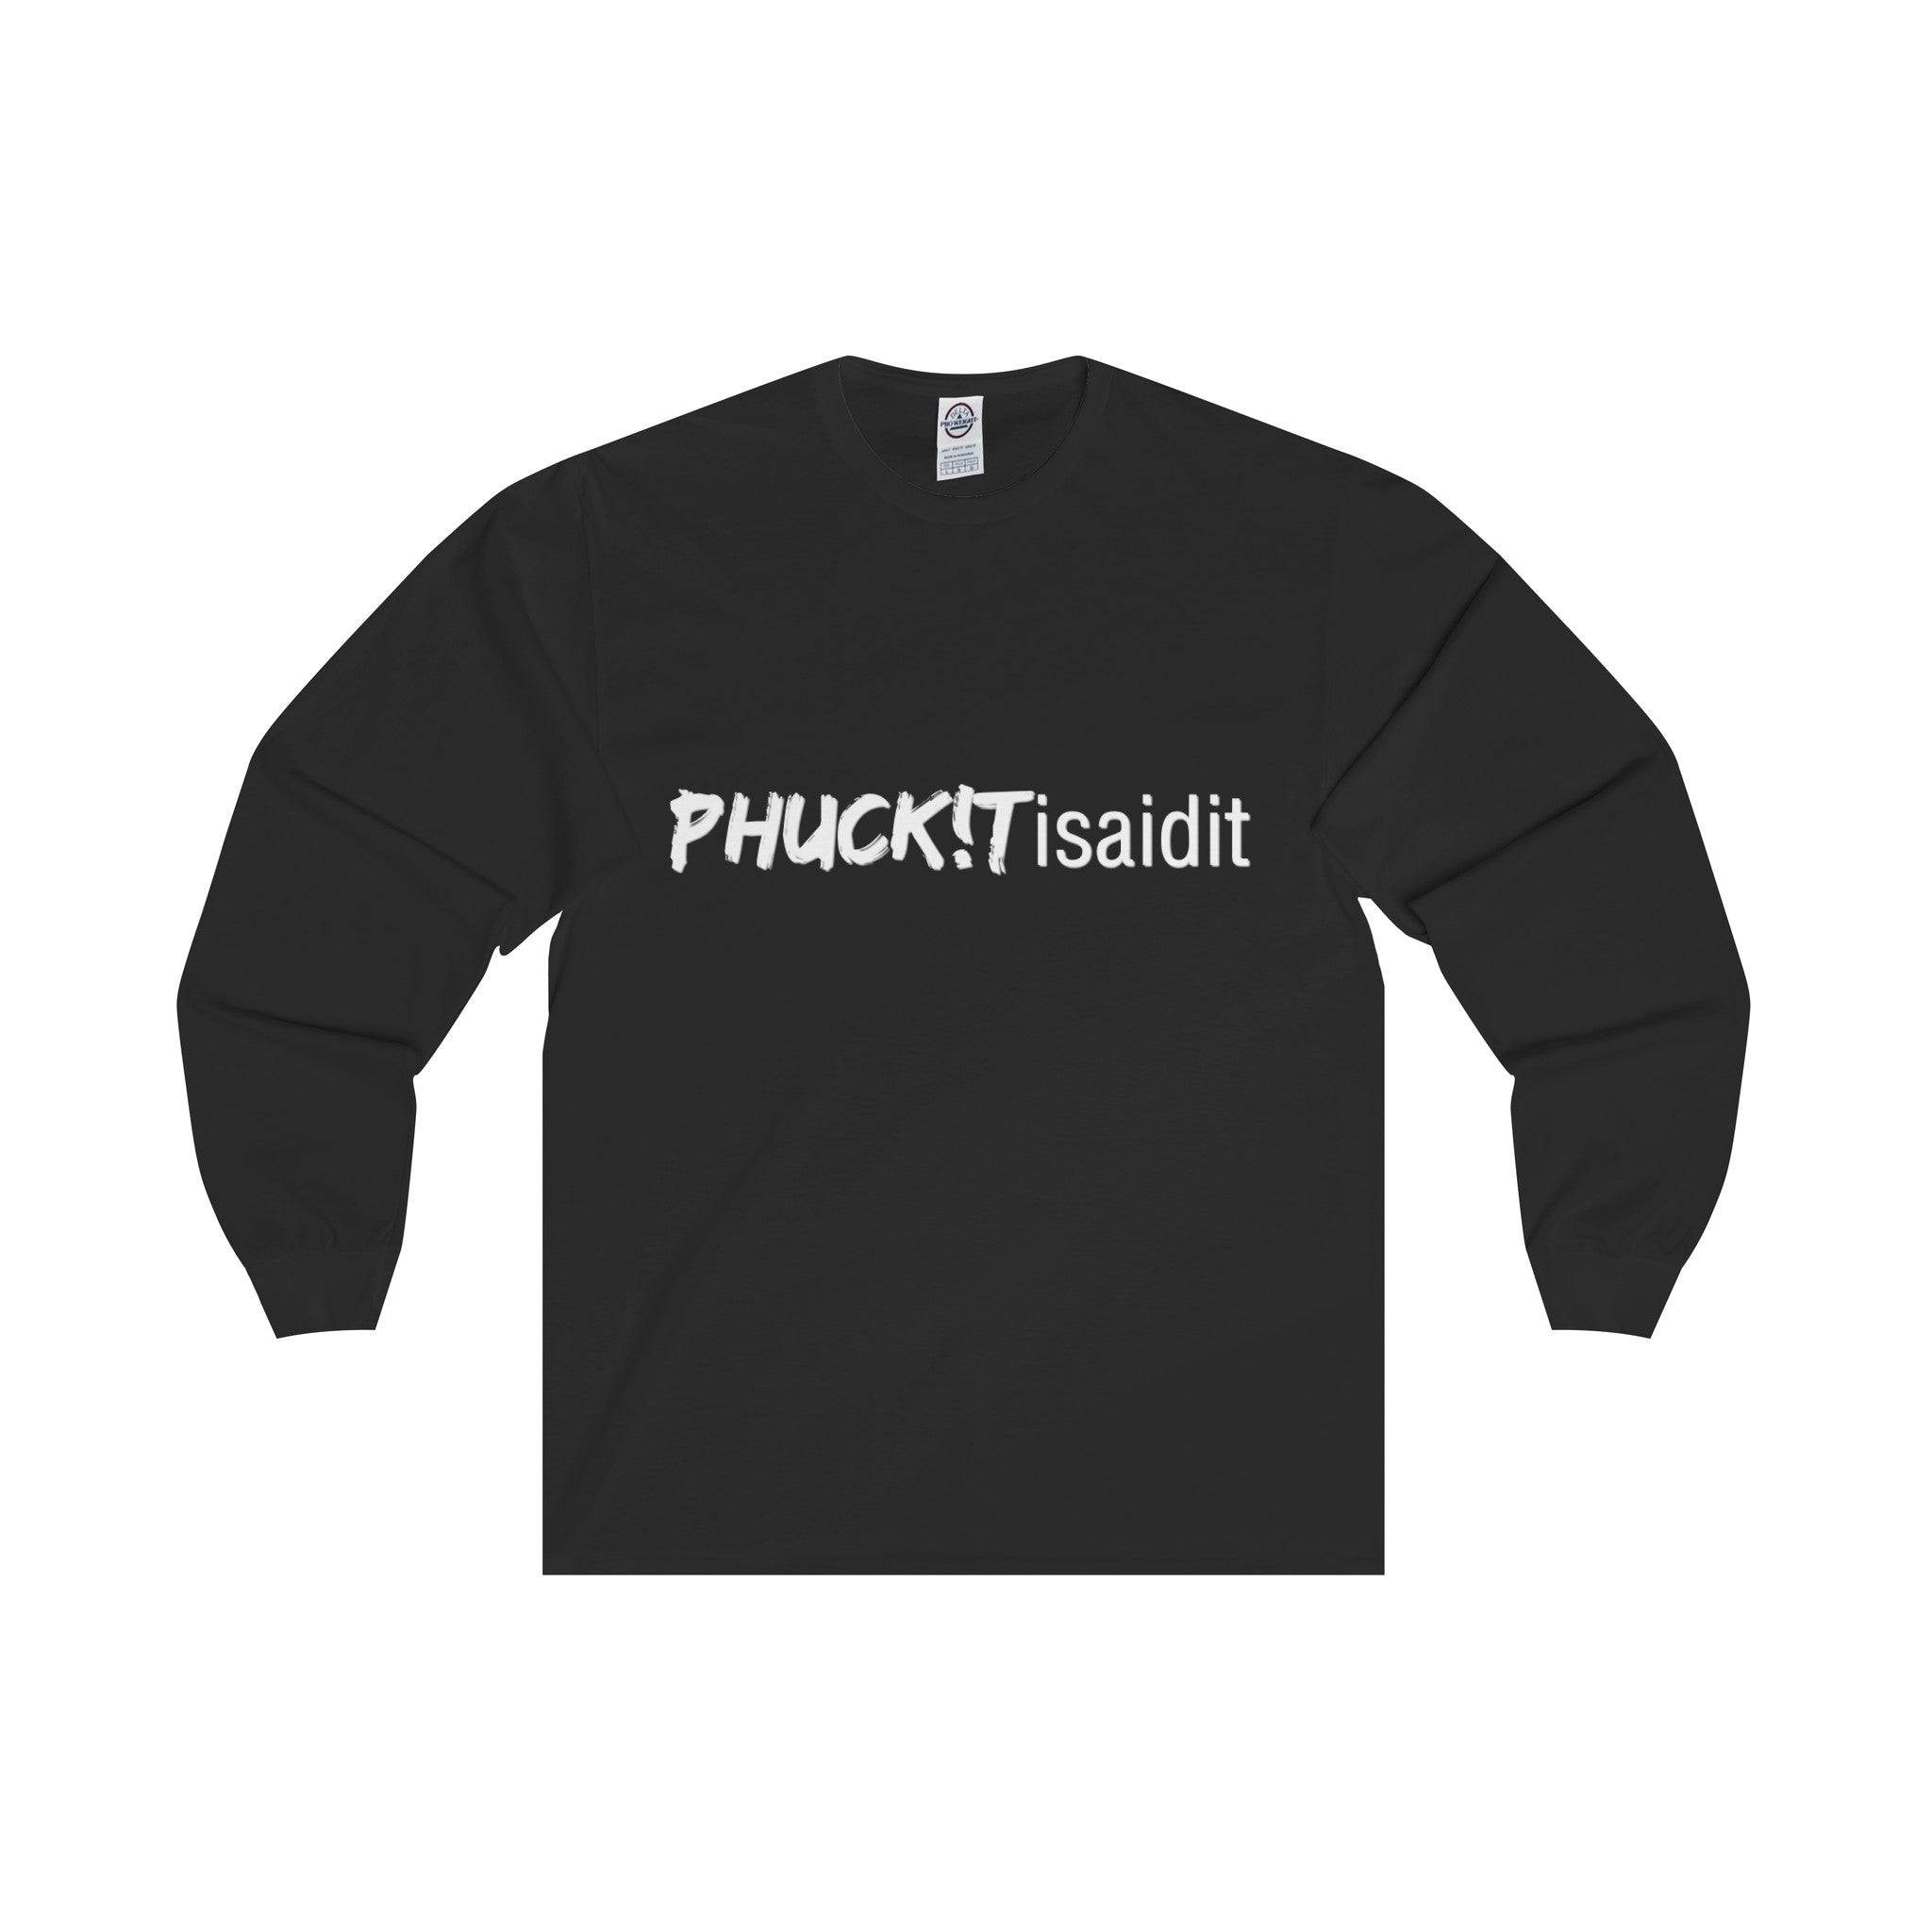 PHUCKITisaidit women's Long Sleeve Tee